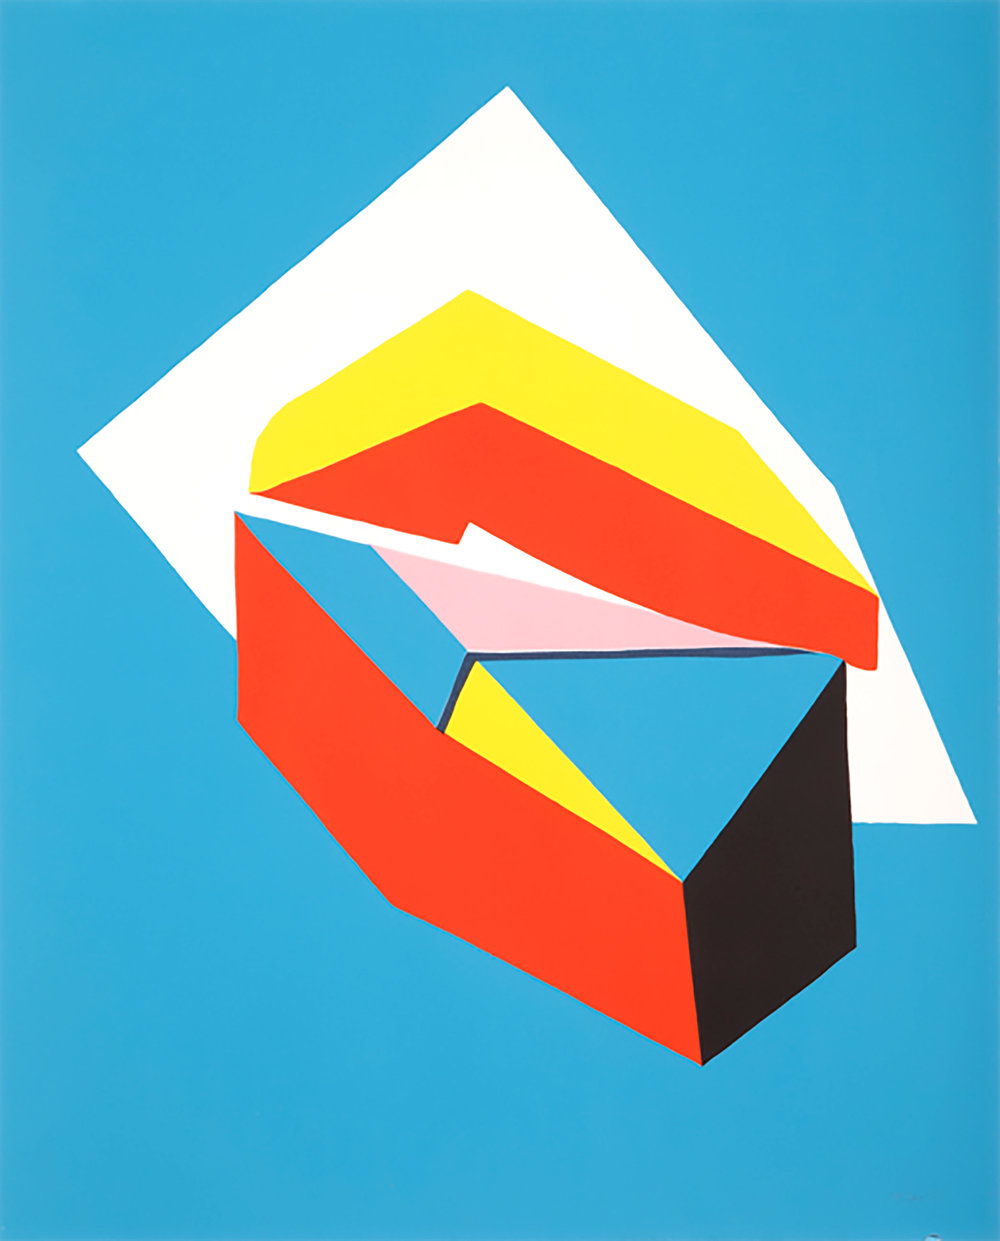 Clare Rojas   Untitled , 2013  From The Lab's portfolio box  Screen Print  22.5 x 19.5 x 3.5 in